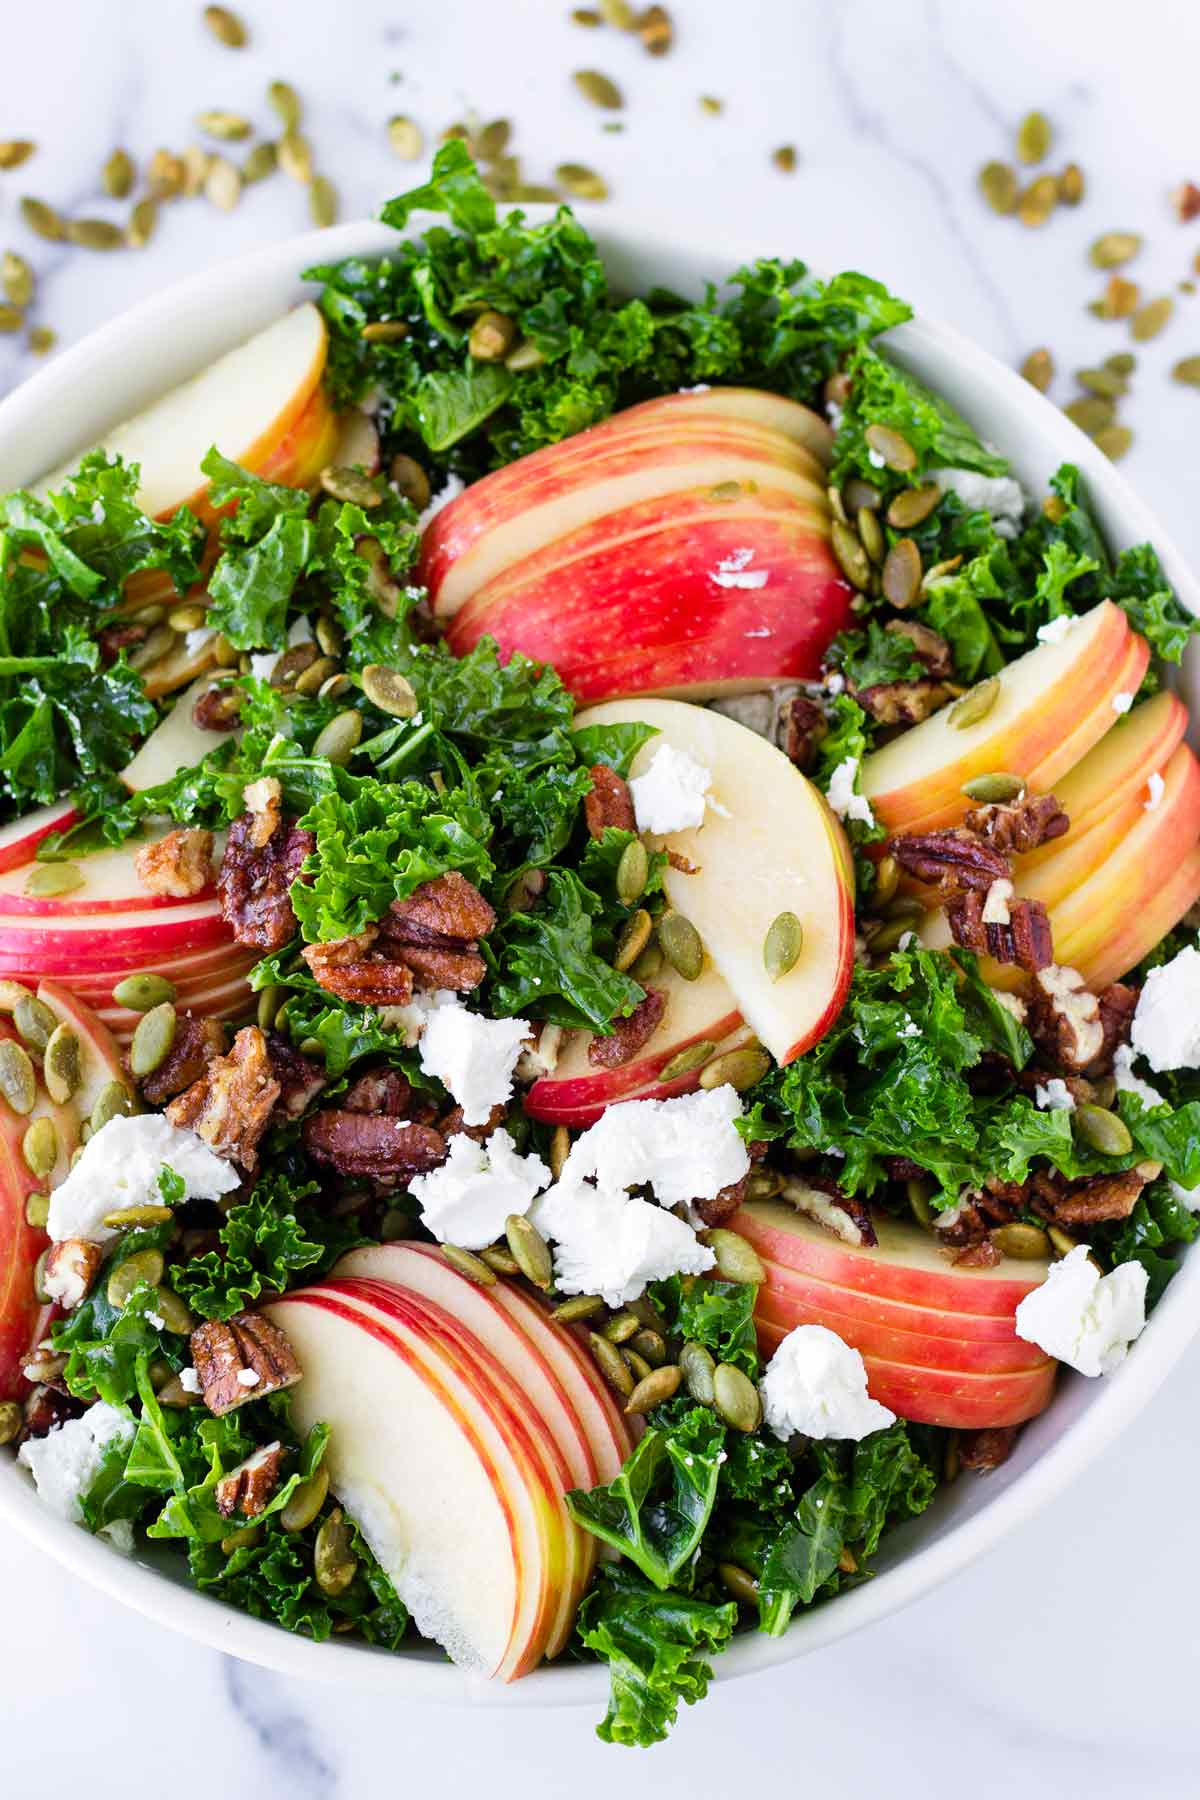 apple salad with kale, goat cheese, nuts, and pumpkin seeds